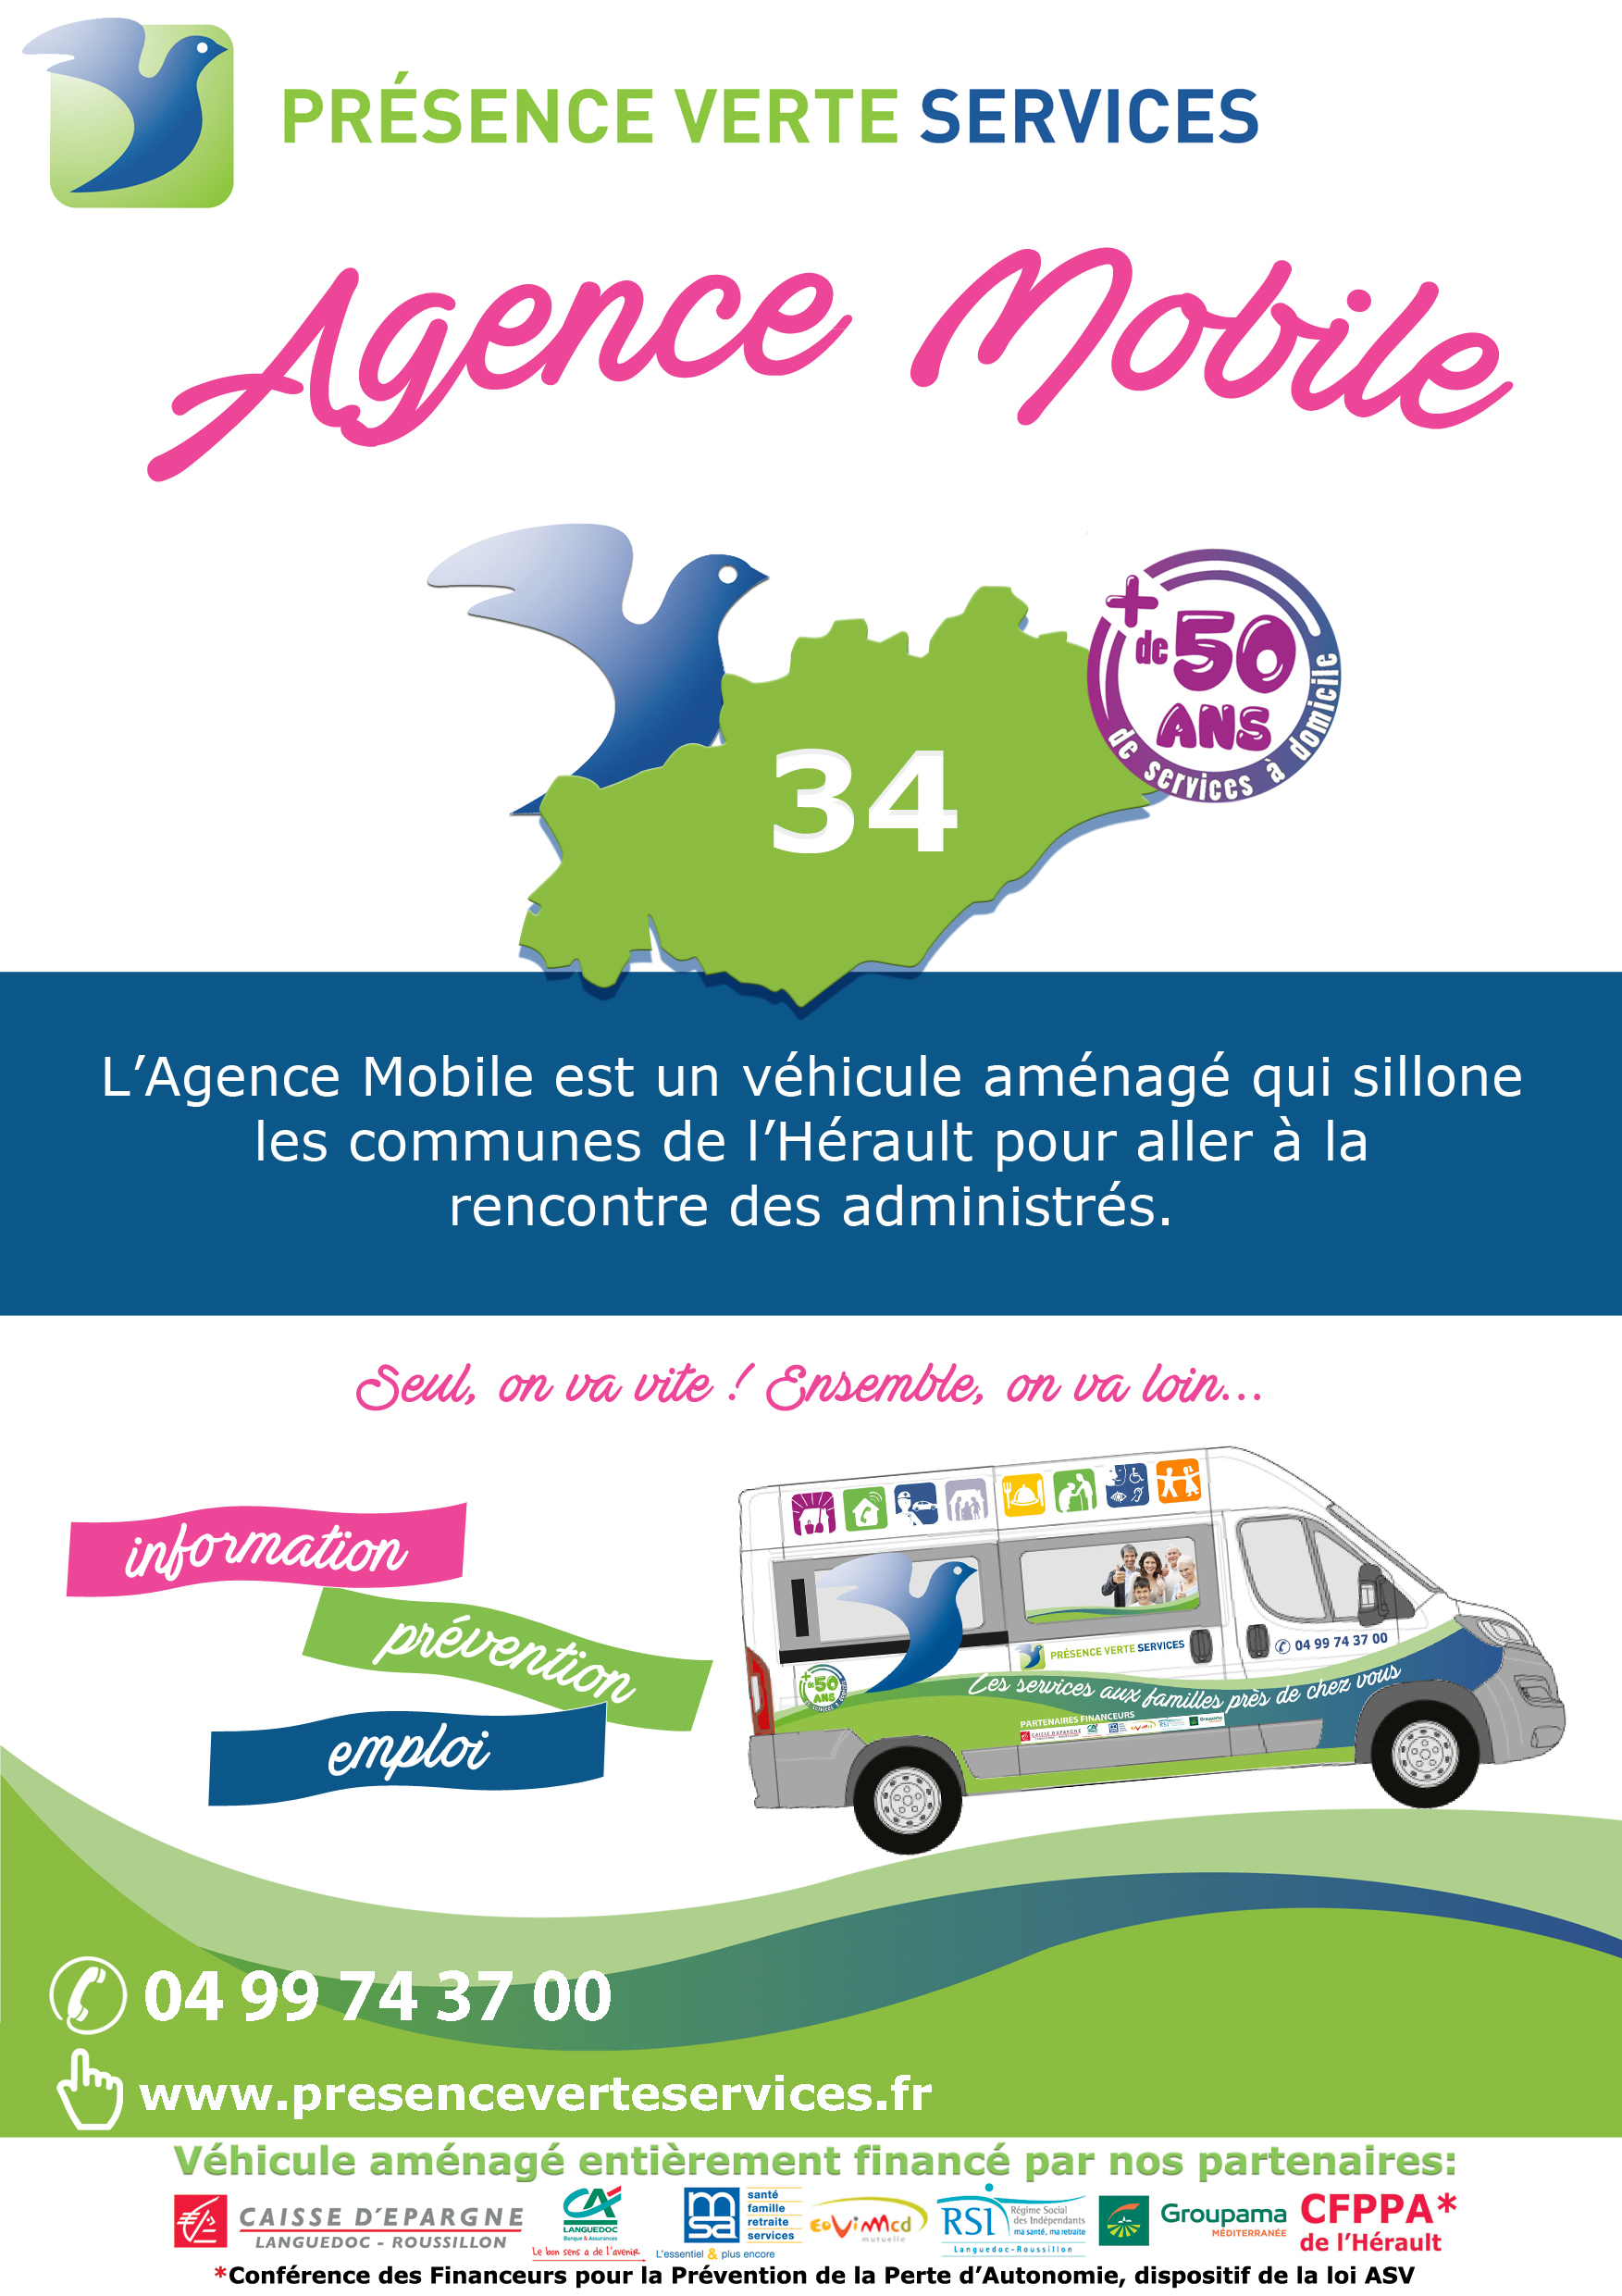 Agence rencontre personnalisee